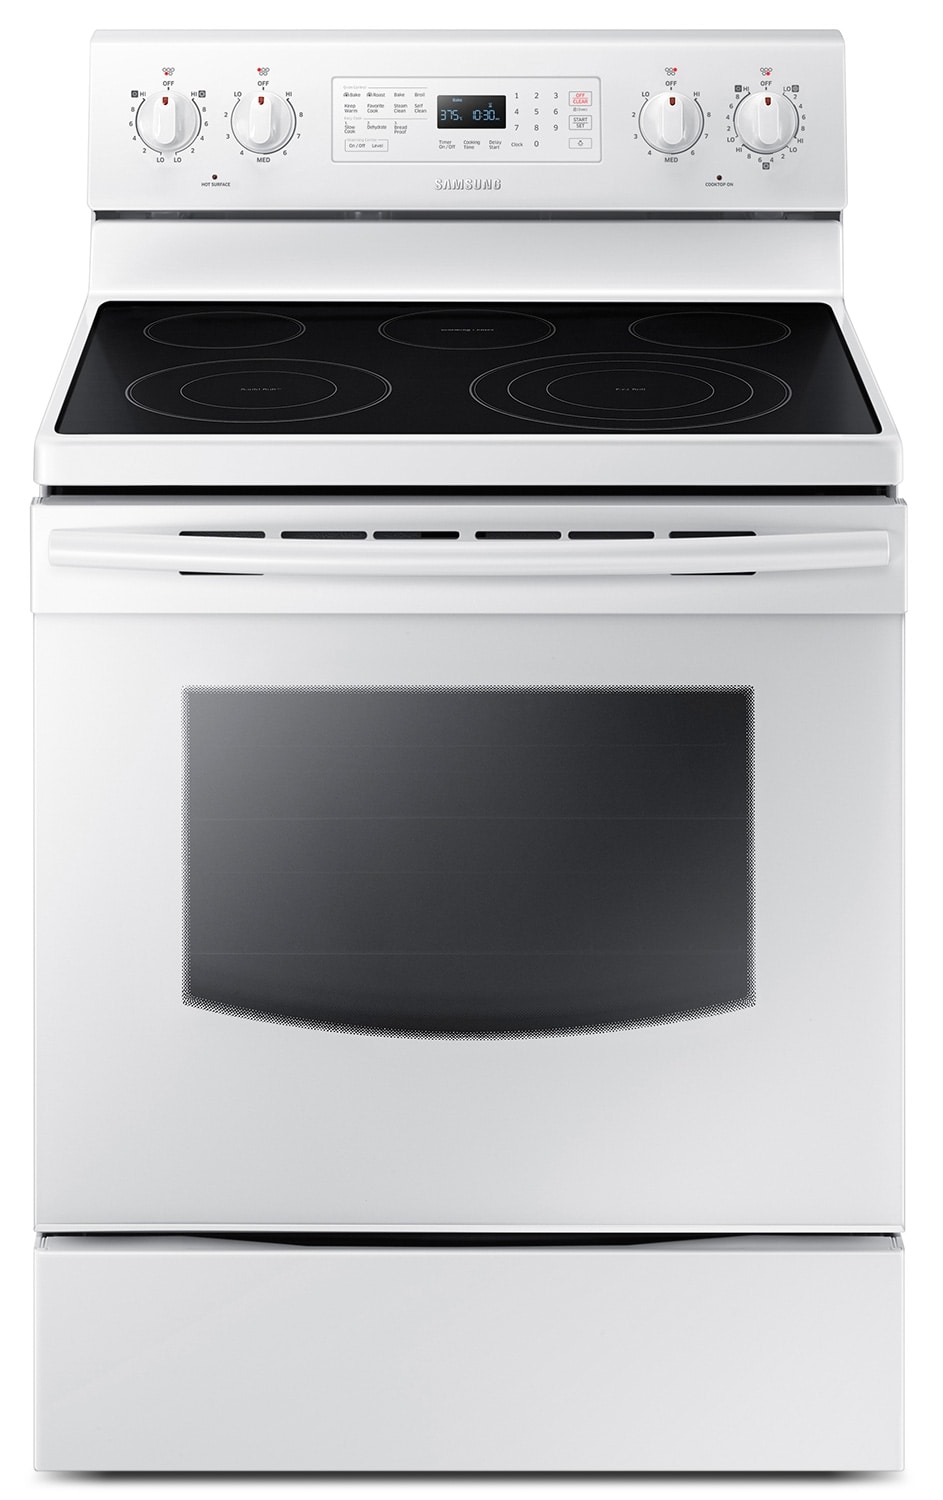 Samsung White Freestanding Electric Convection Range (5.9 Cu. Ft.) - NE59J3420SW/AC